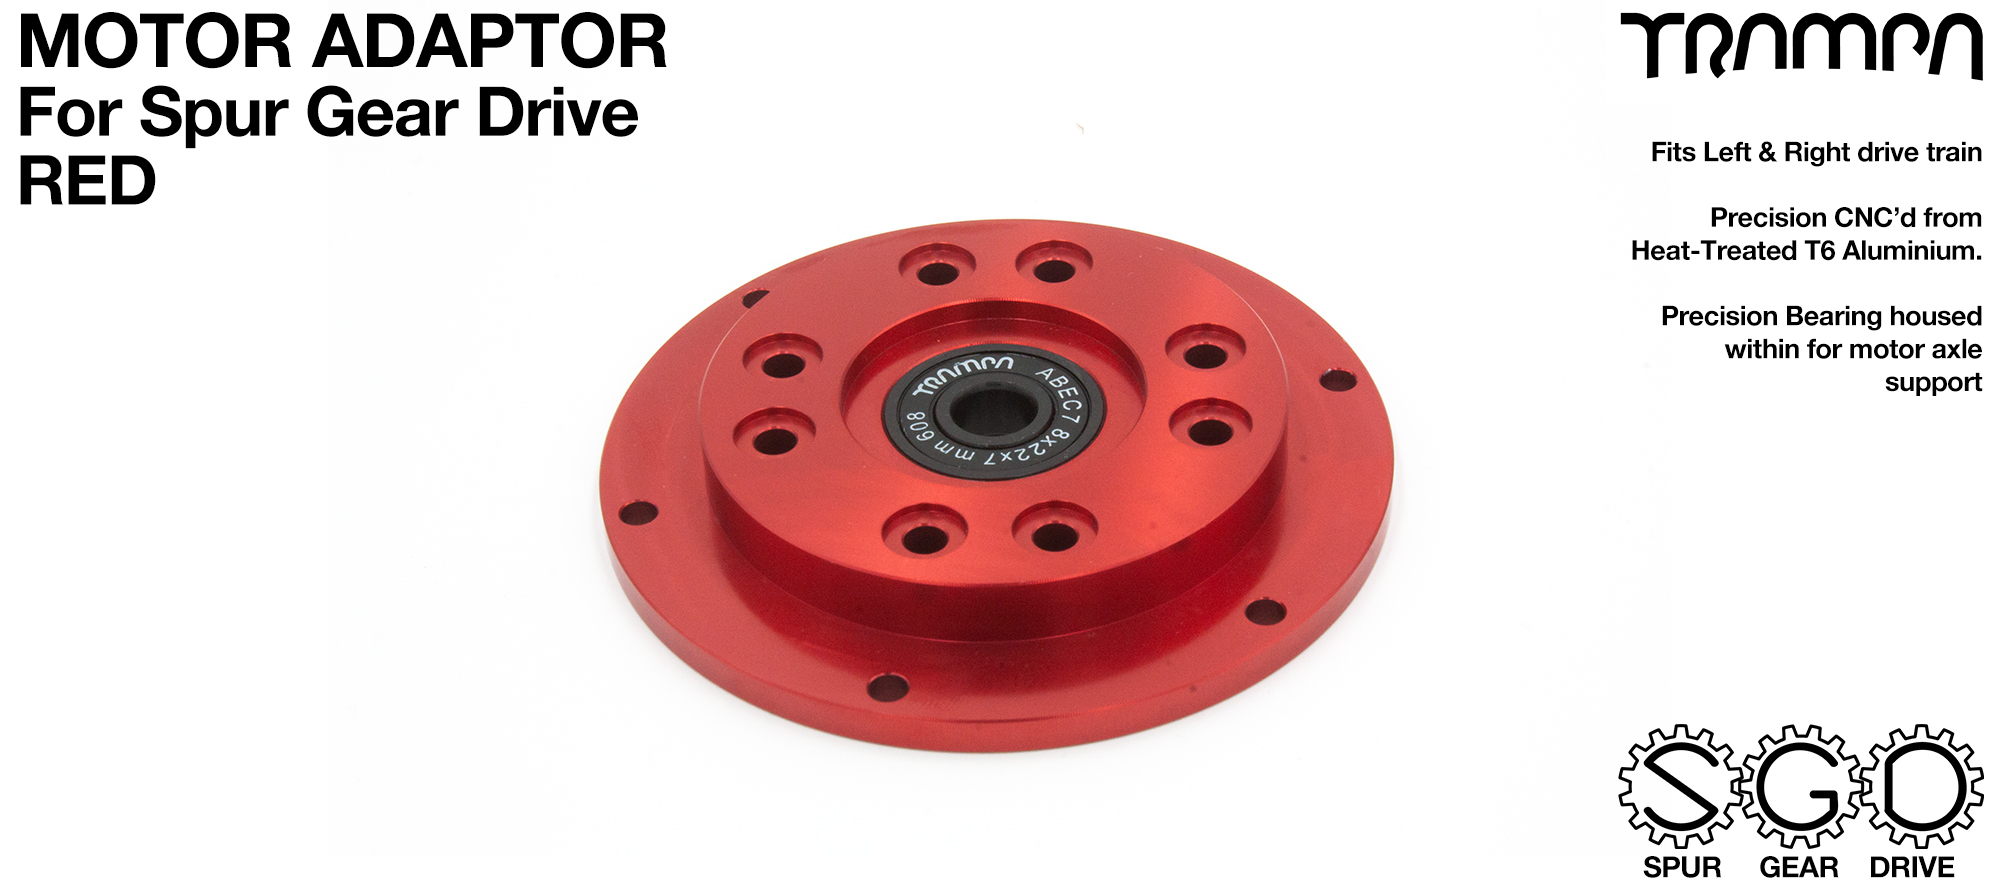 RED Motor Adapter plate